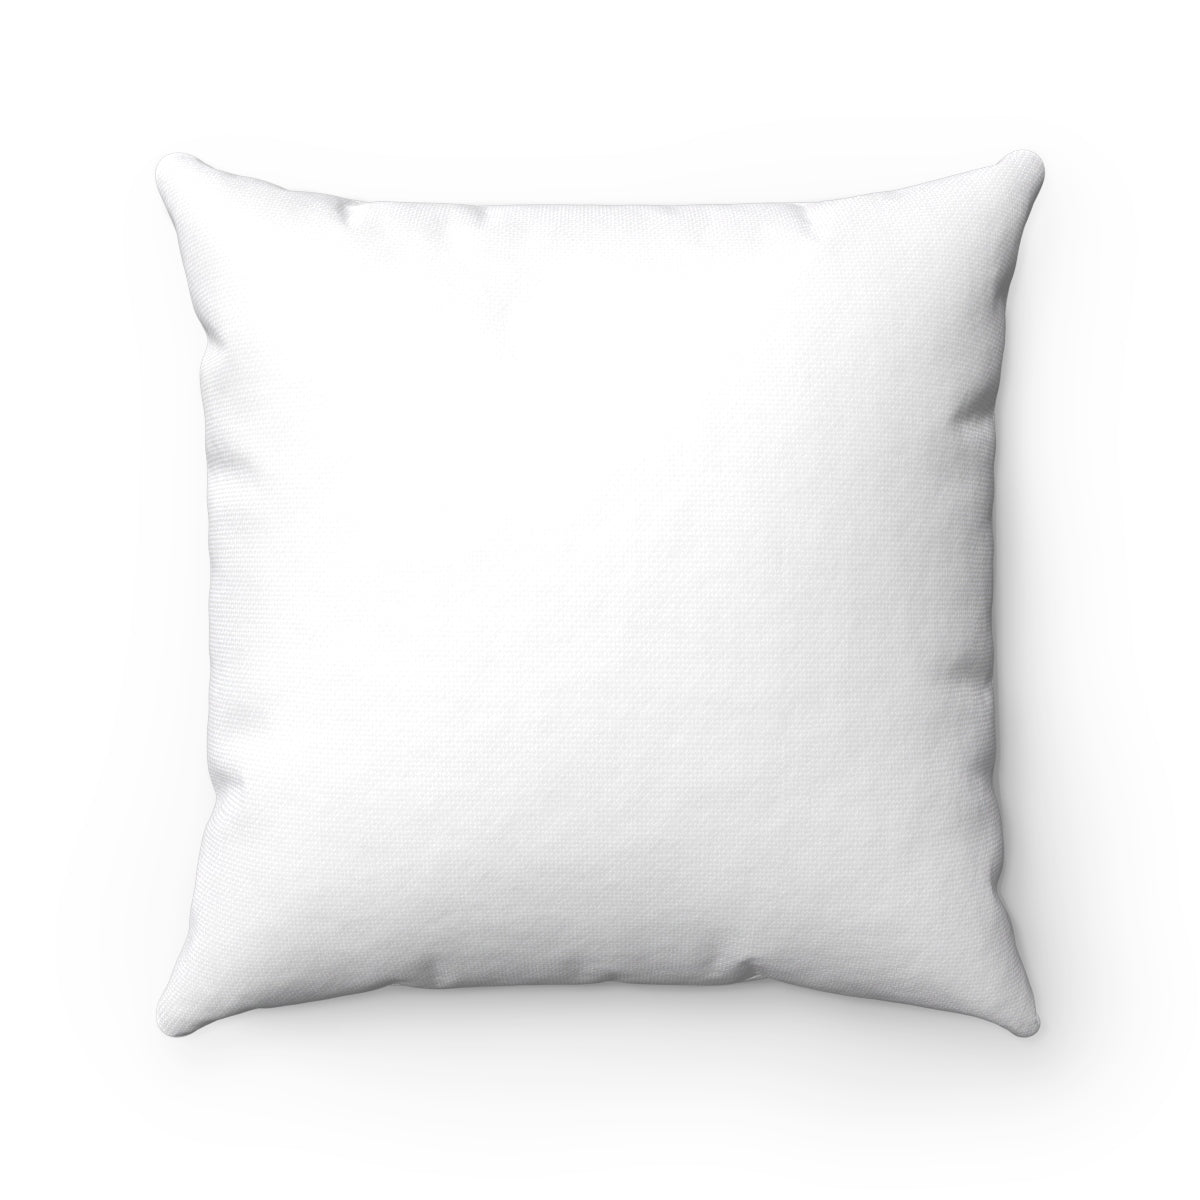 Knitted Together By God Spun Polyester Square Pillow